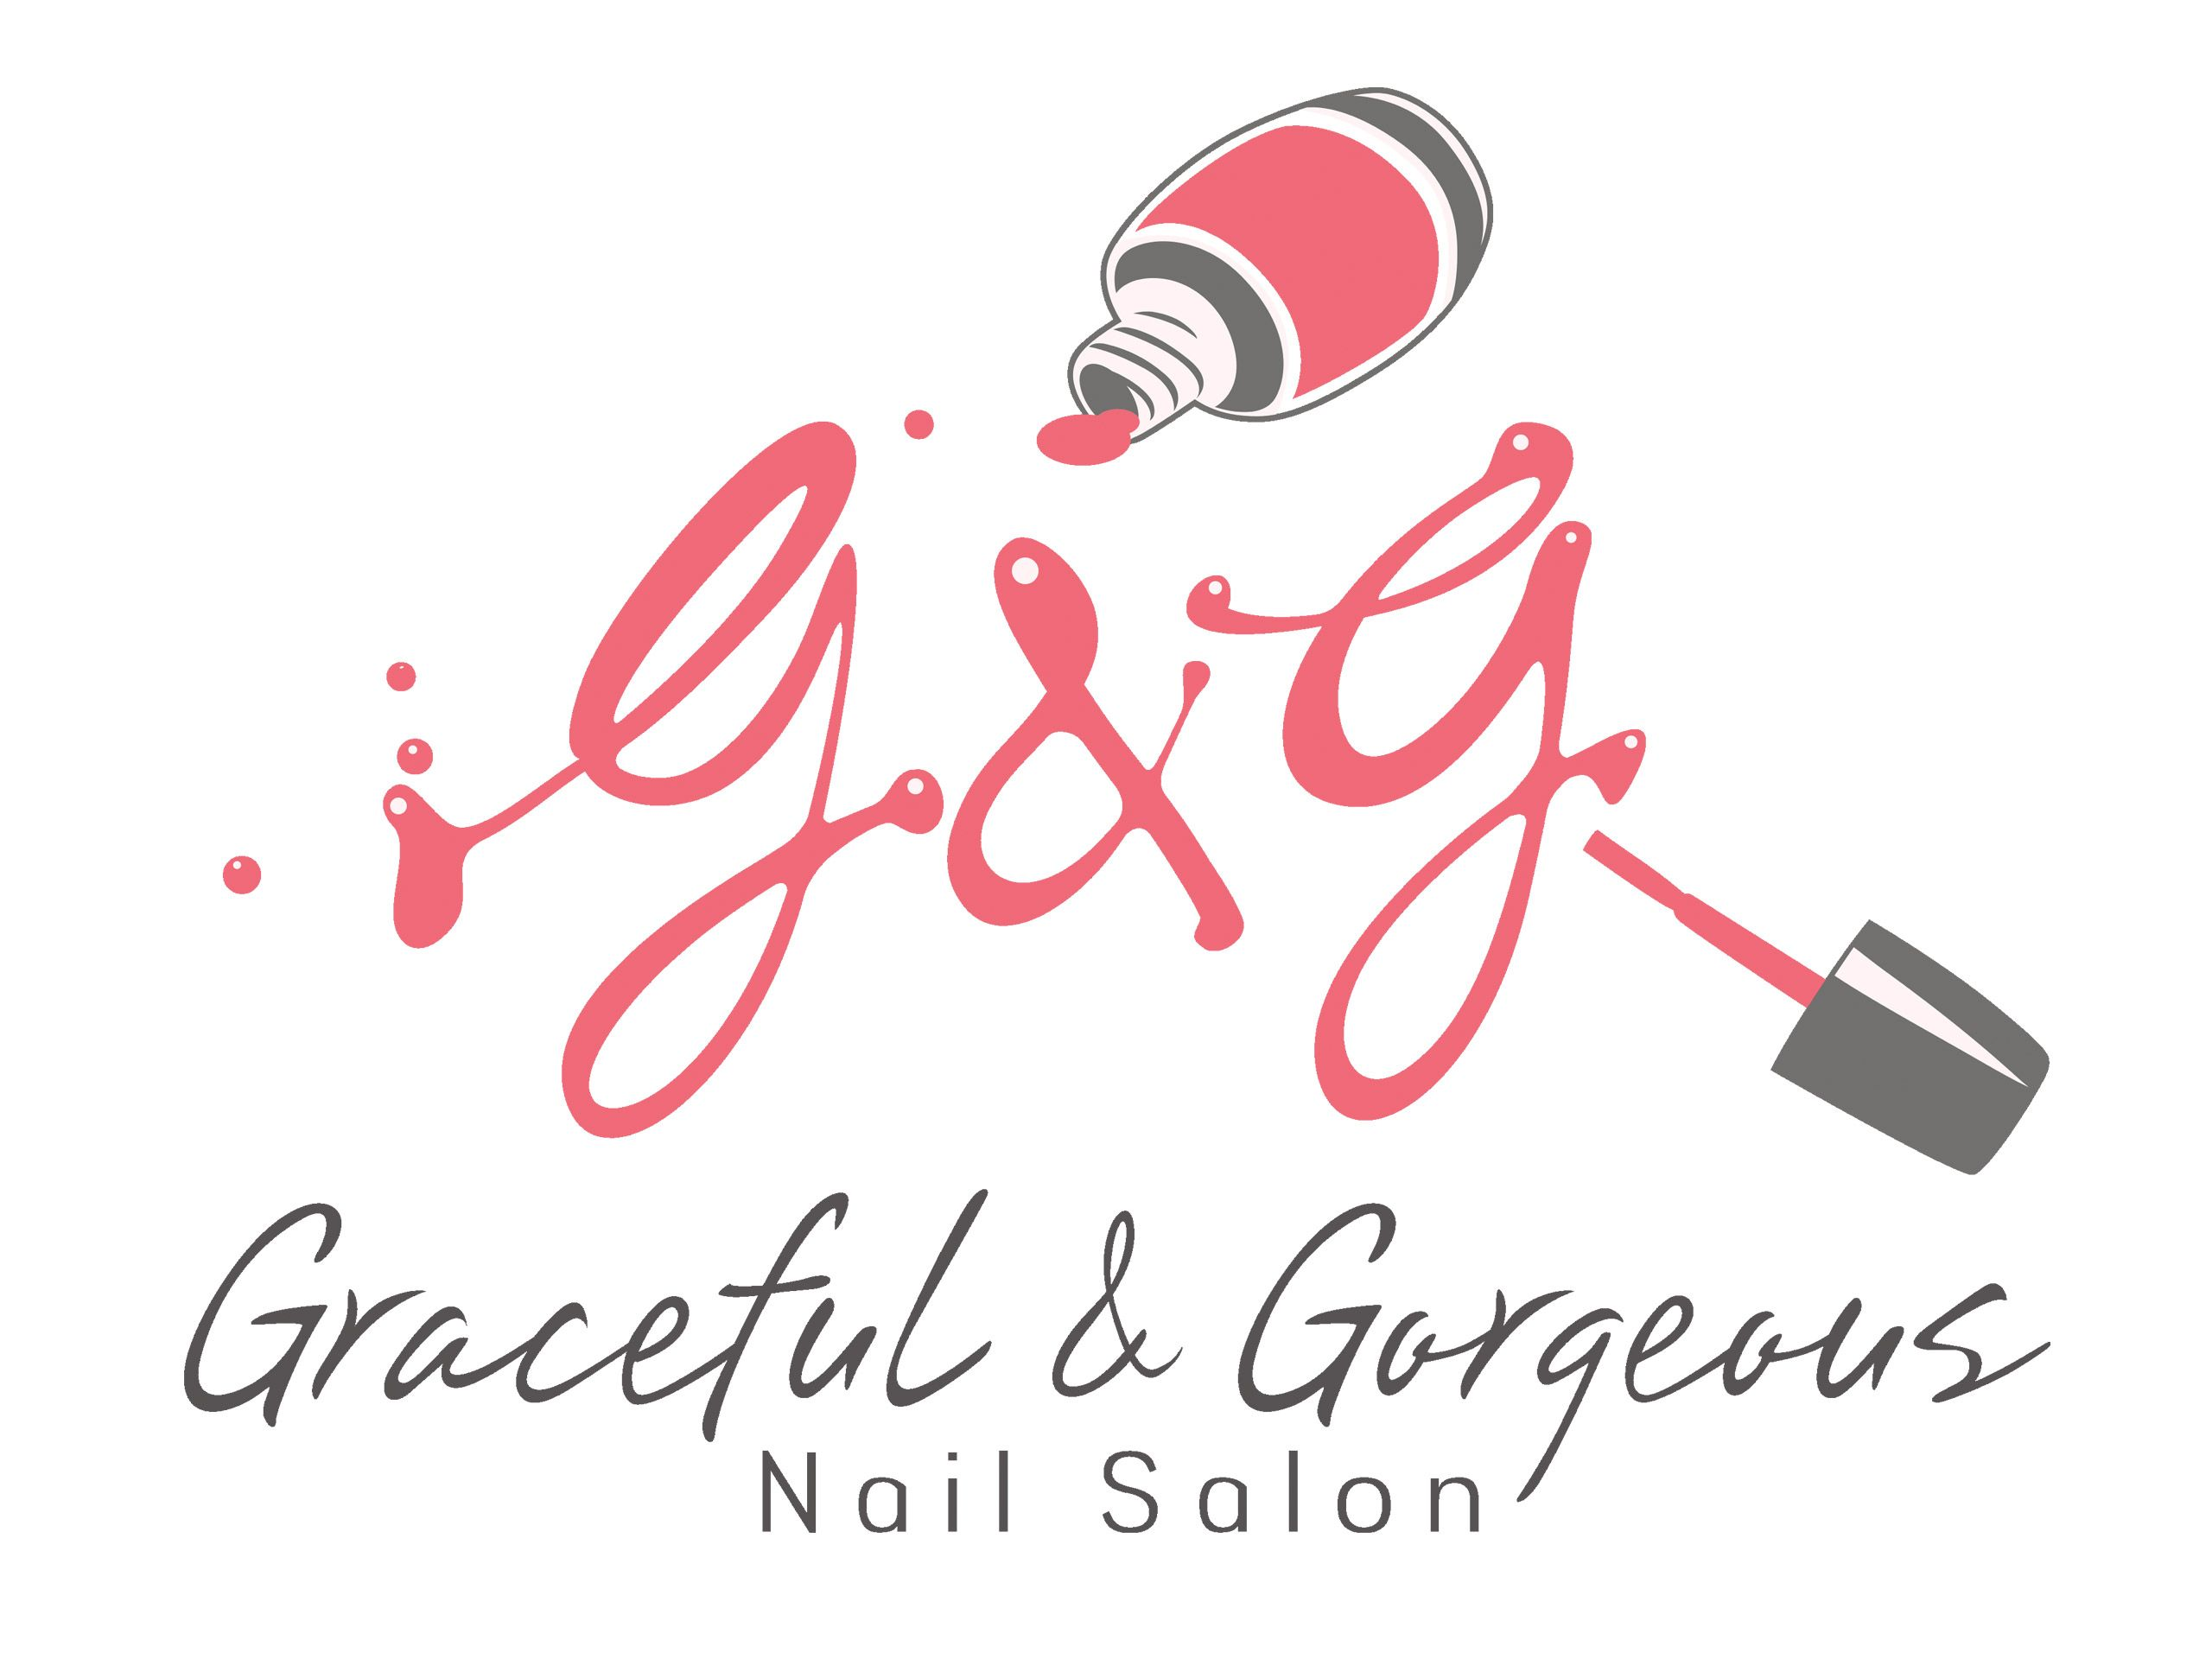 nails logo Αναζήτηση Google design Pinterest Logos